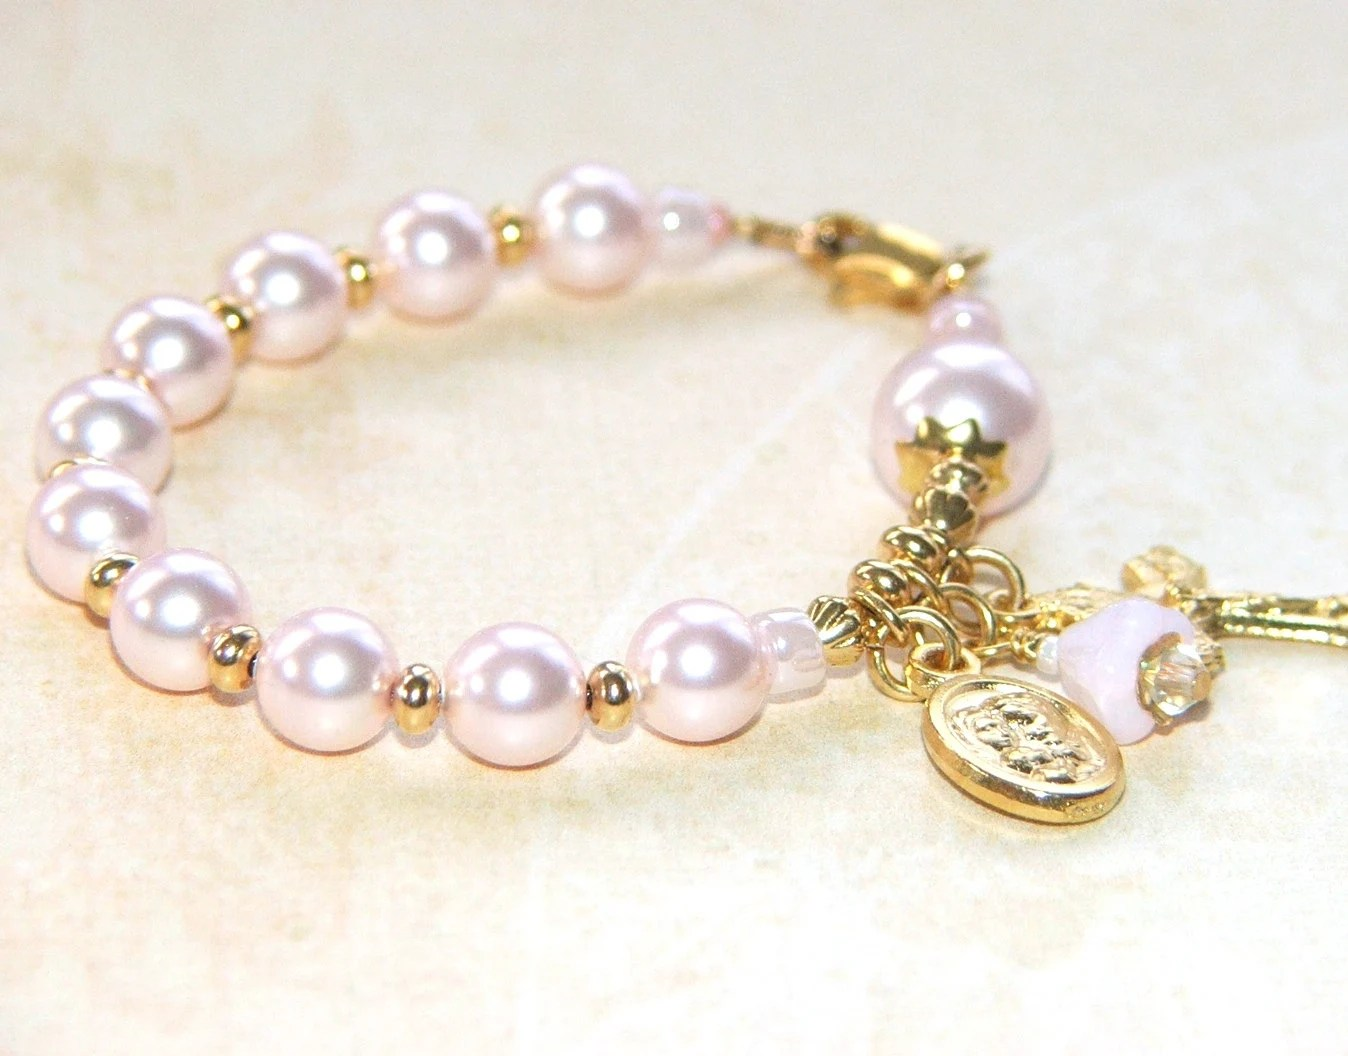 Catholic Baby Bracelet Rosary Bracelet For By Onedaysgracenz